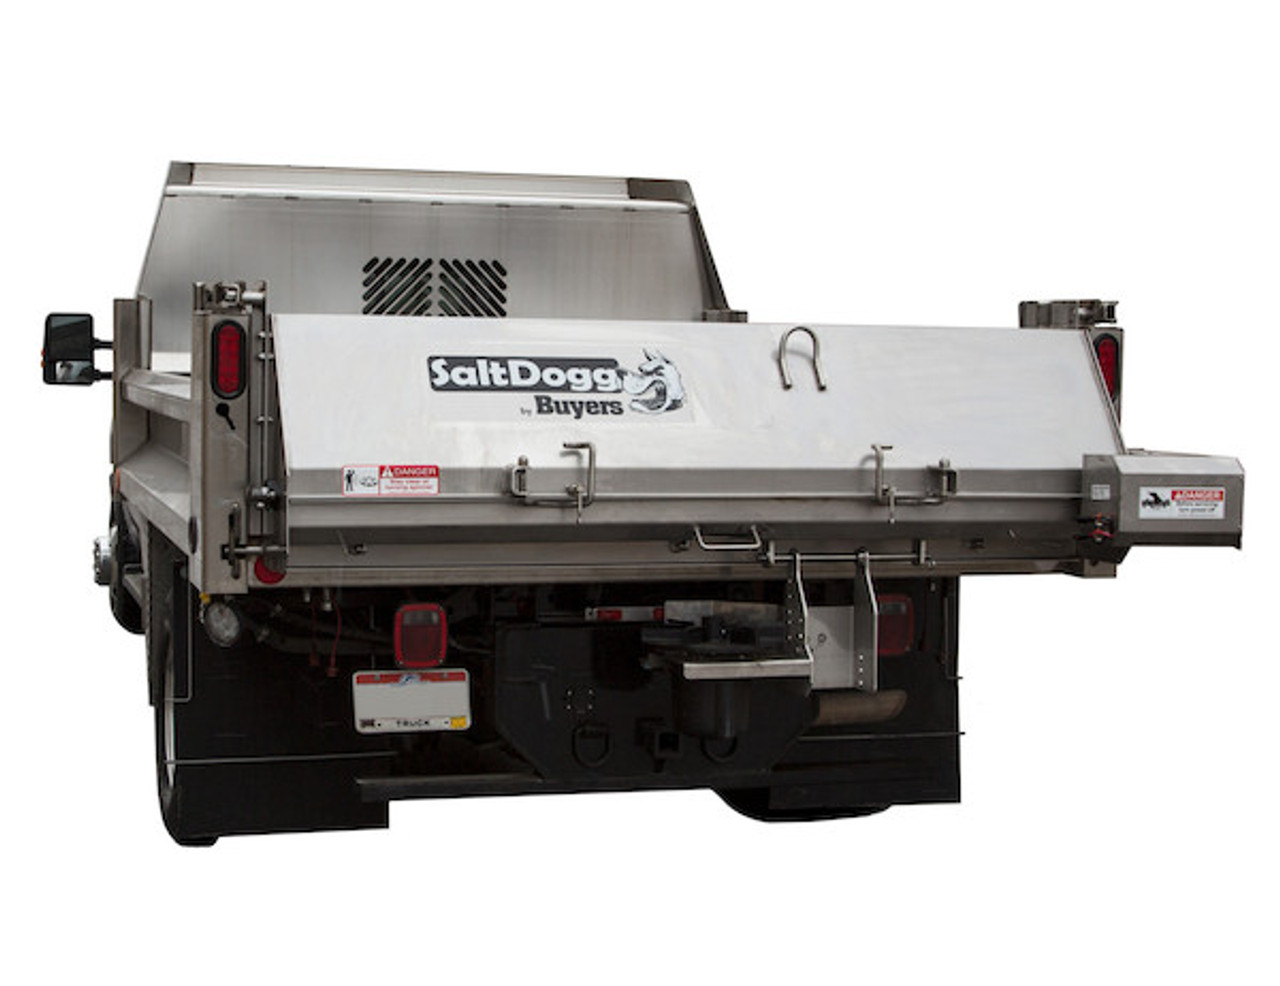 92430A BUYERS SALTDOGG HYDRAULIC CARBON STEEL UNDER TAILGATE SALT SPREADER WITH 5:1 RATIO GEARBOX PARISSUPPLY PARIS SUPPLY SALT